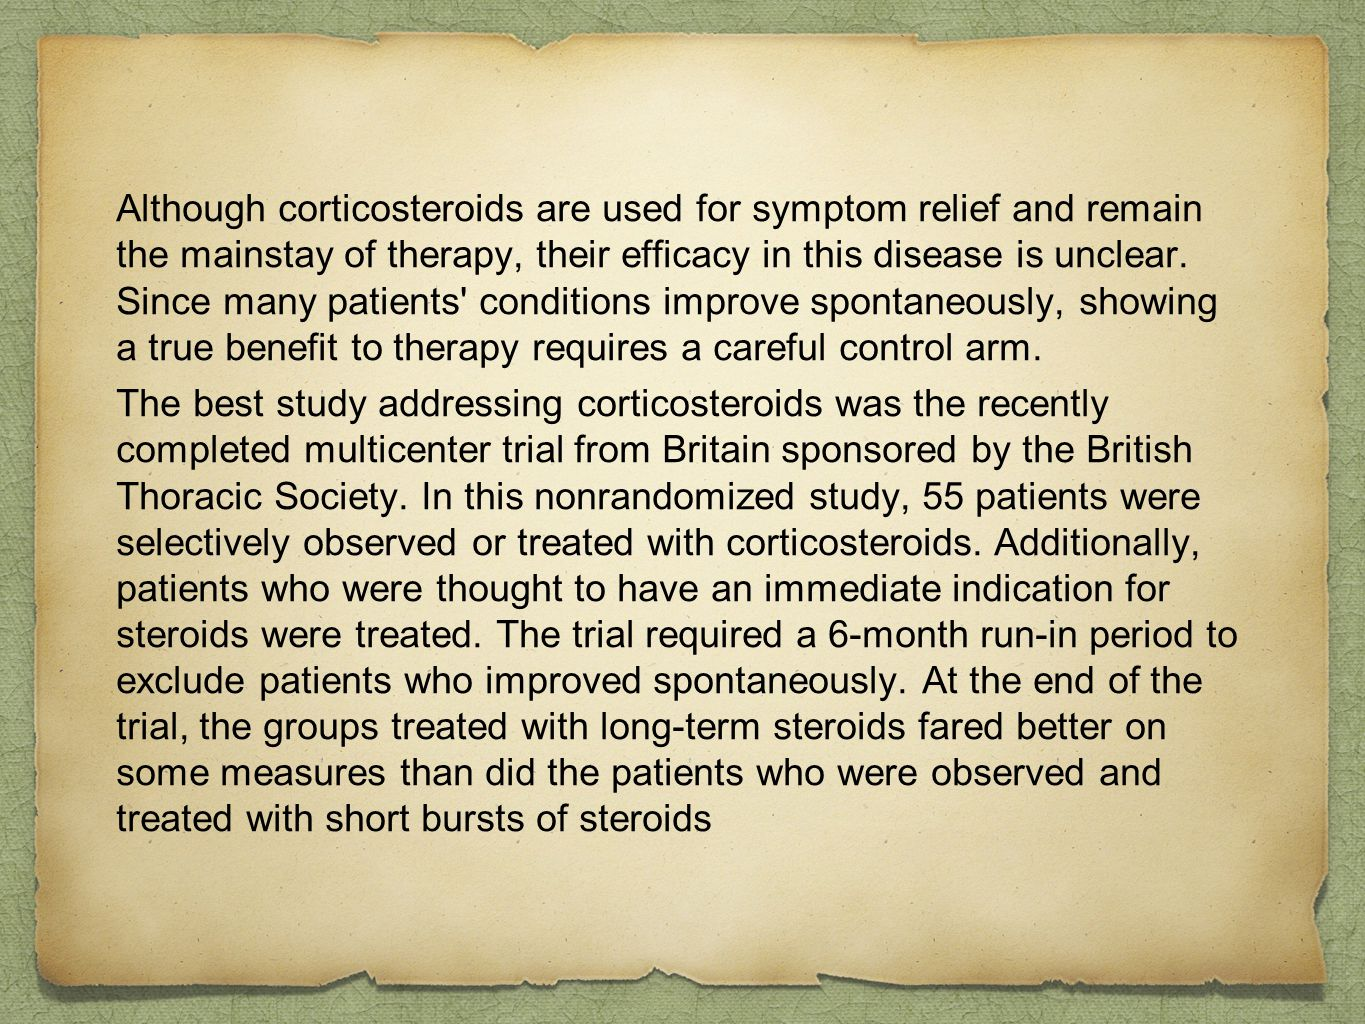 Although corticosteroids are used for symptom relief and remain the mainstay of therapy, their efficacy in this disease is unclear. Since many patients conditions improve spontaneously, showing a true benefit to therapy requires a careful control arm.